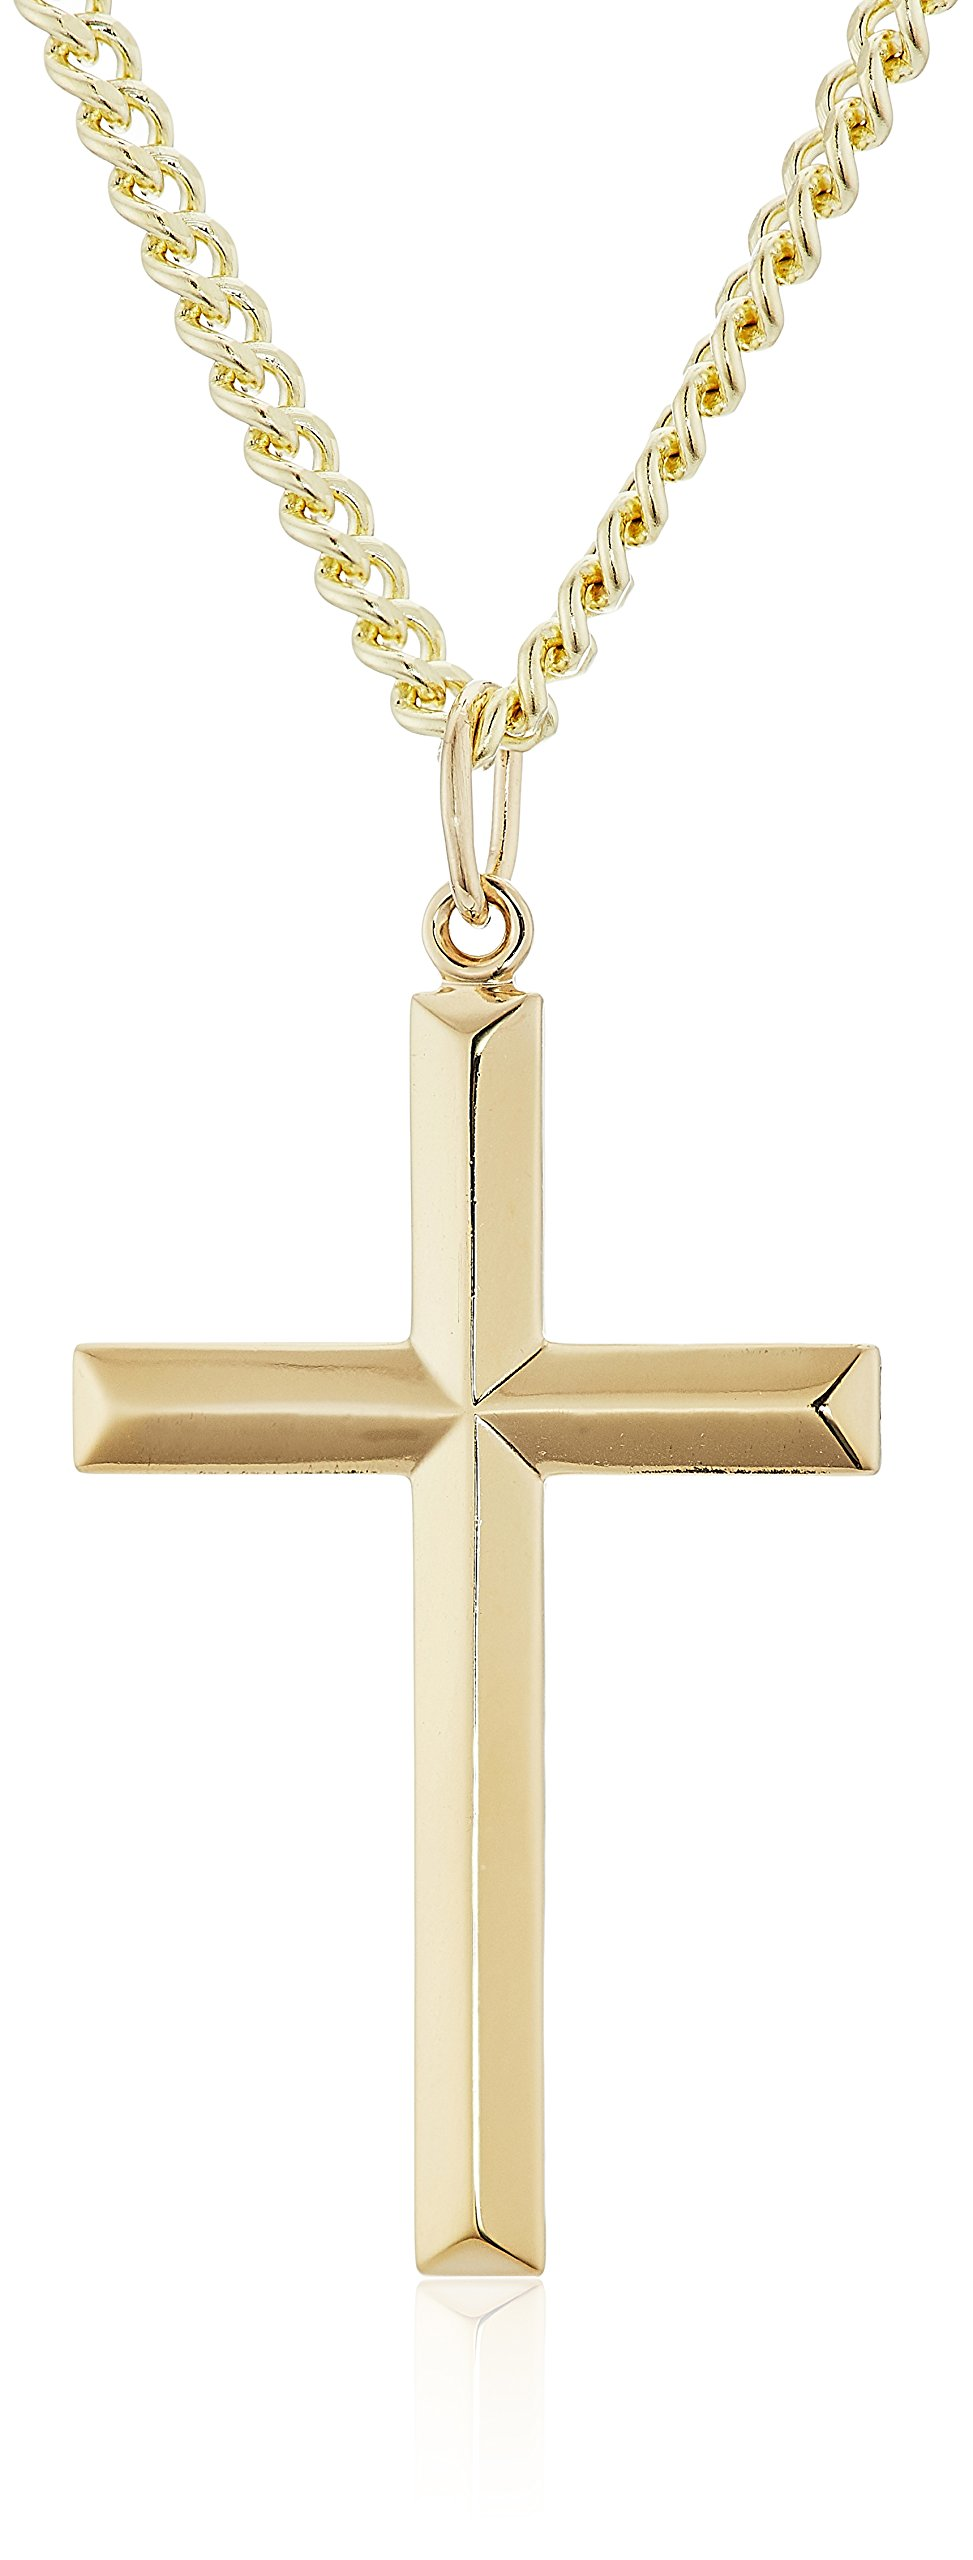 Men's 14k Gold Filled Solid Beveled Edge Embossed Cross with Gold Plated Stainless Steel Chain Pendant Necklace, 24''